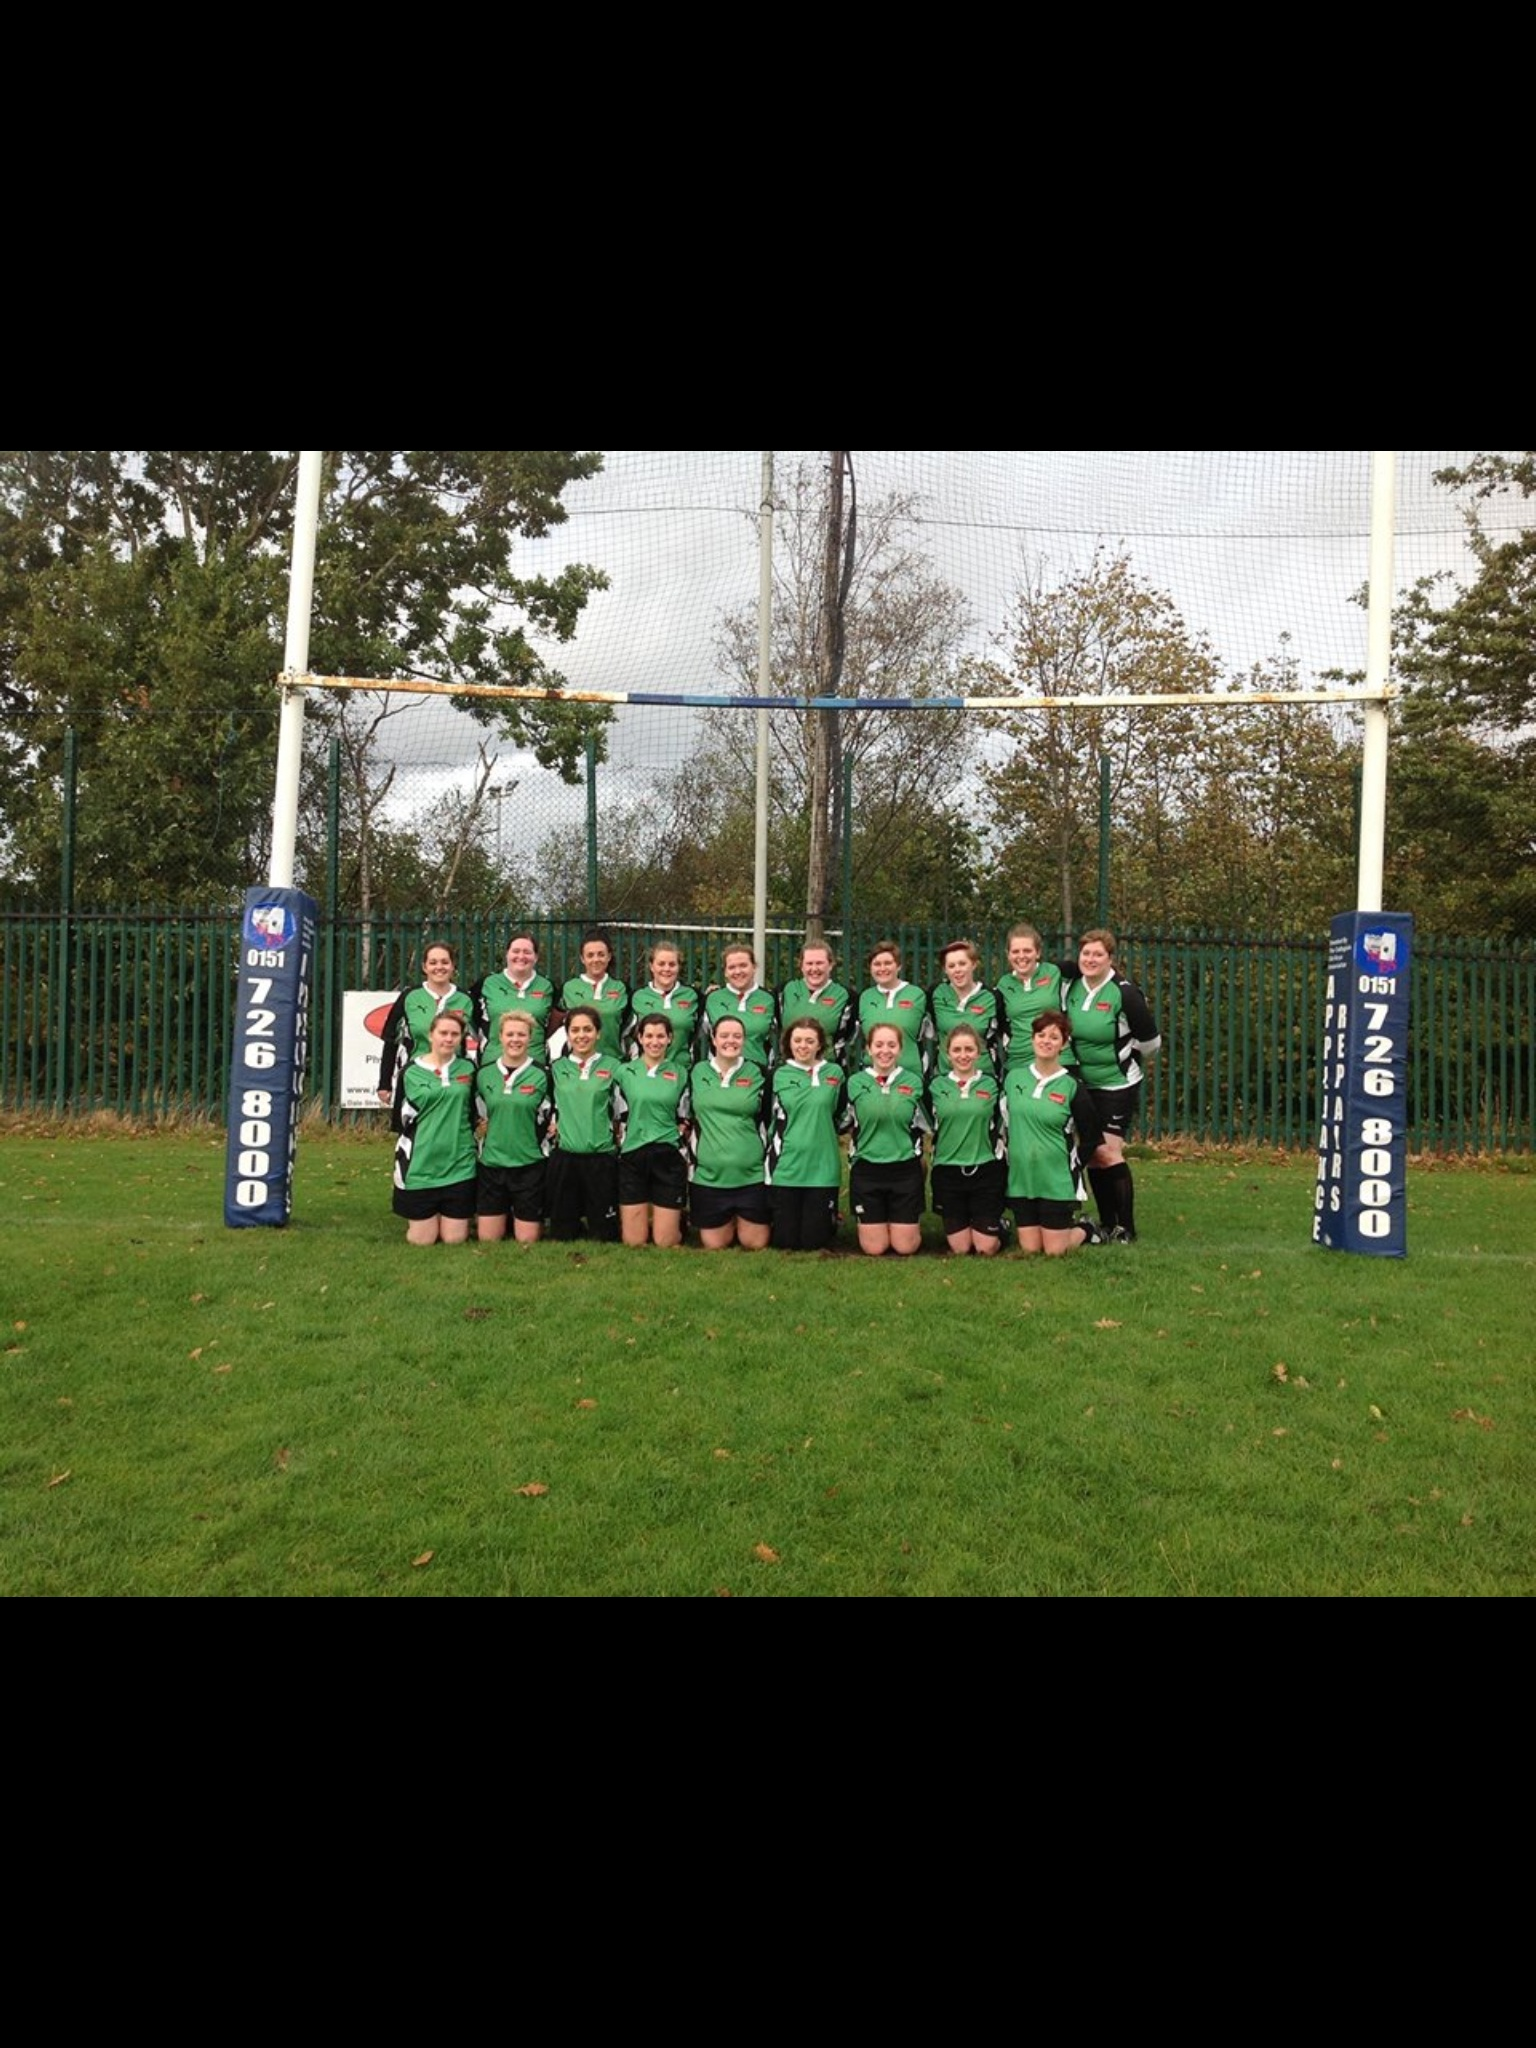 Liverpool Hope Women's Rugby Union